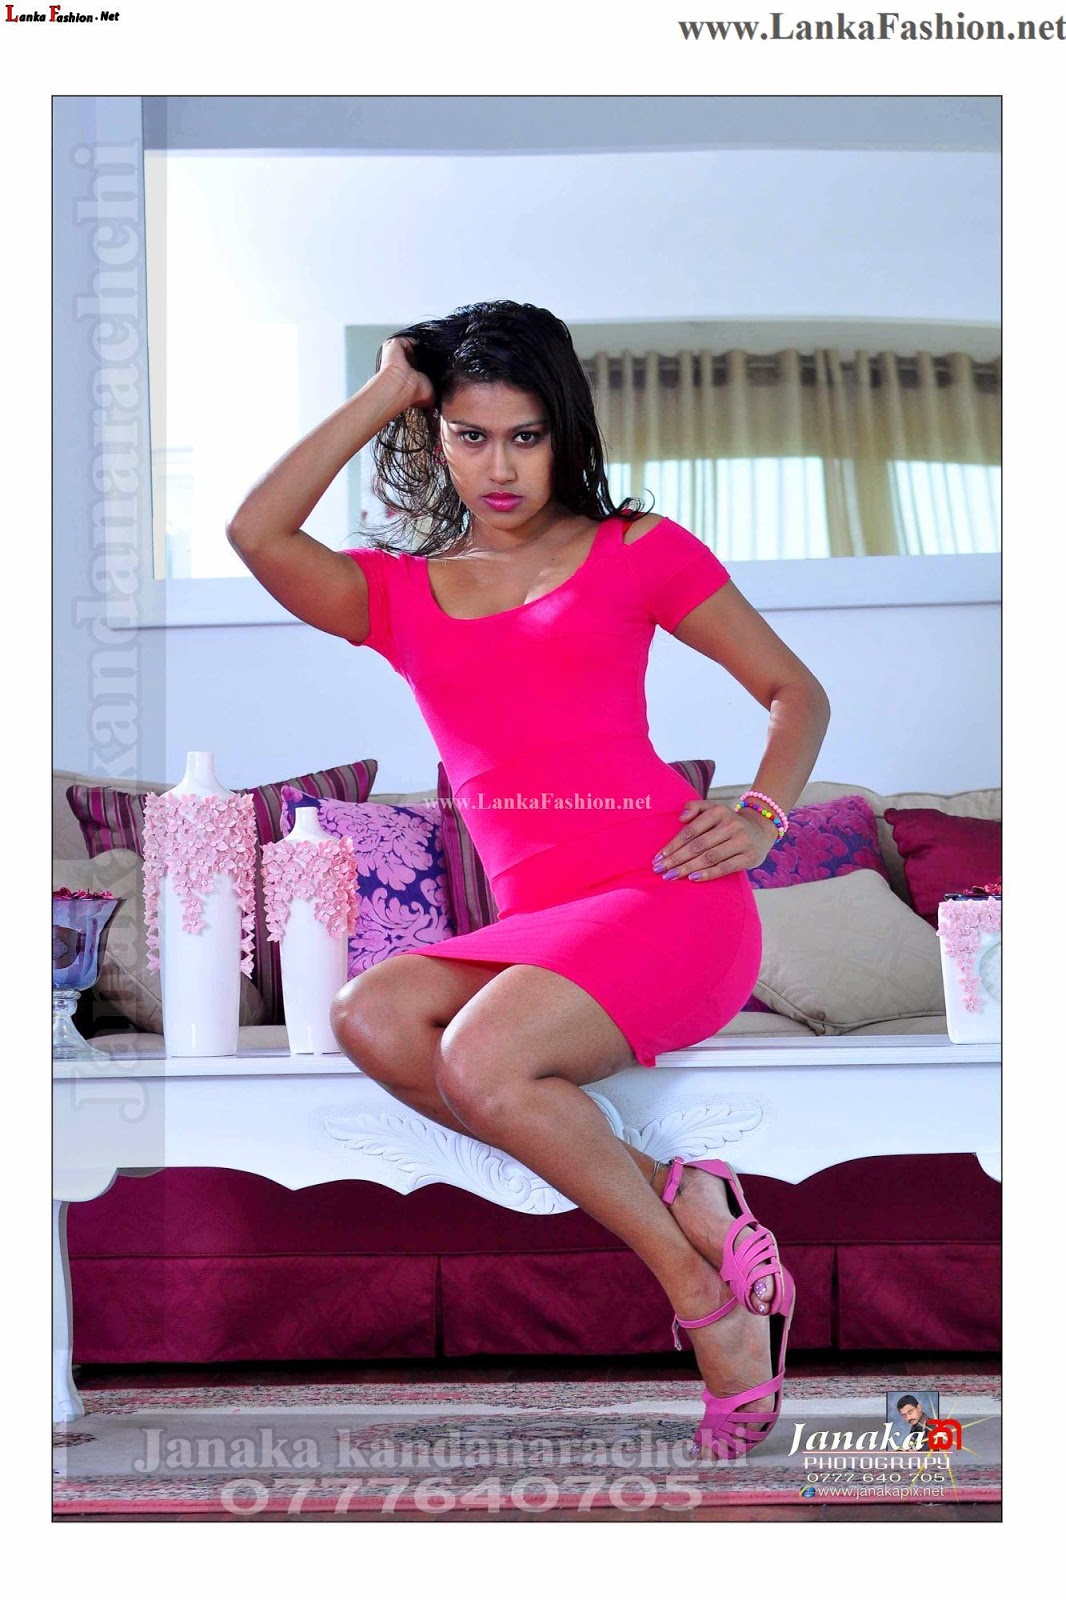 Sri Lankan popular model Chathu Paba Dilhara